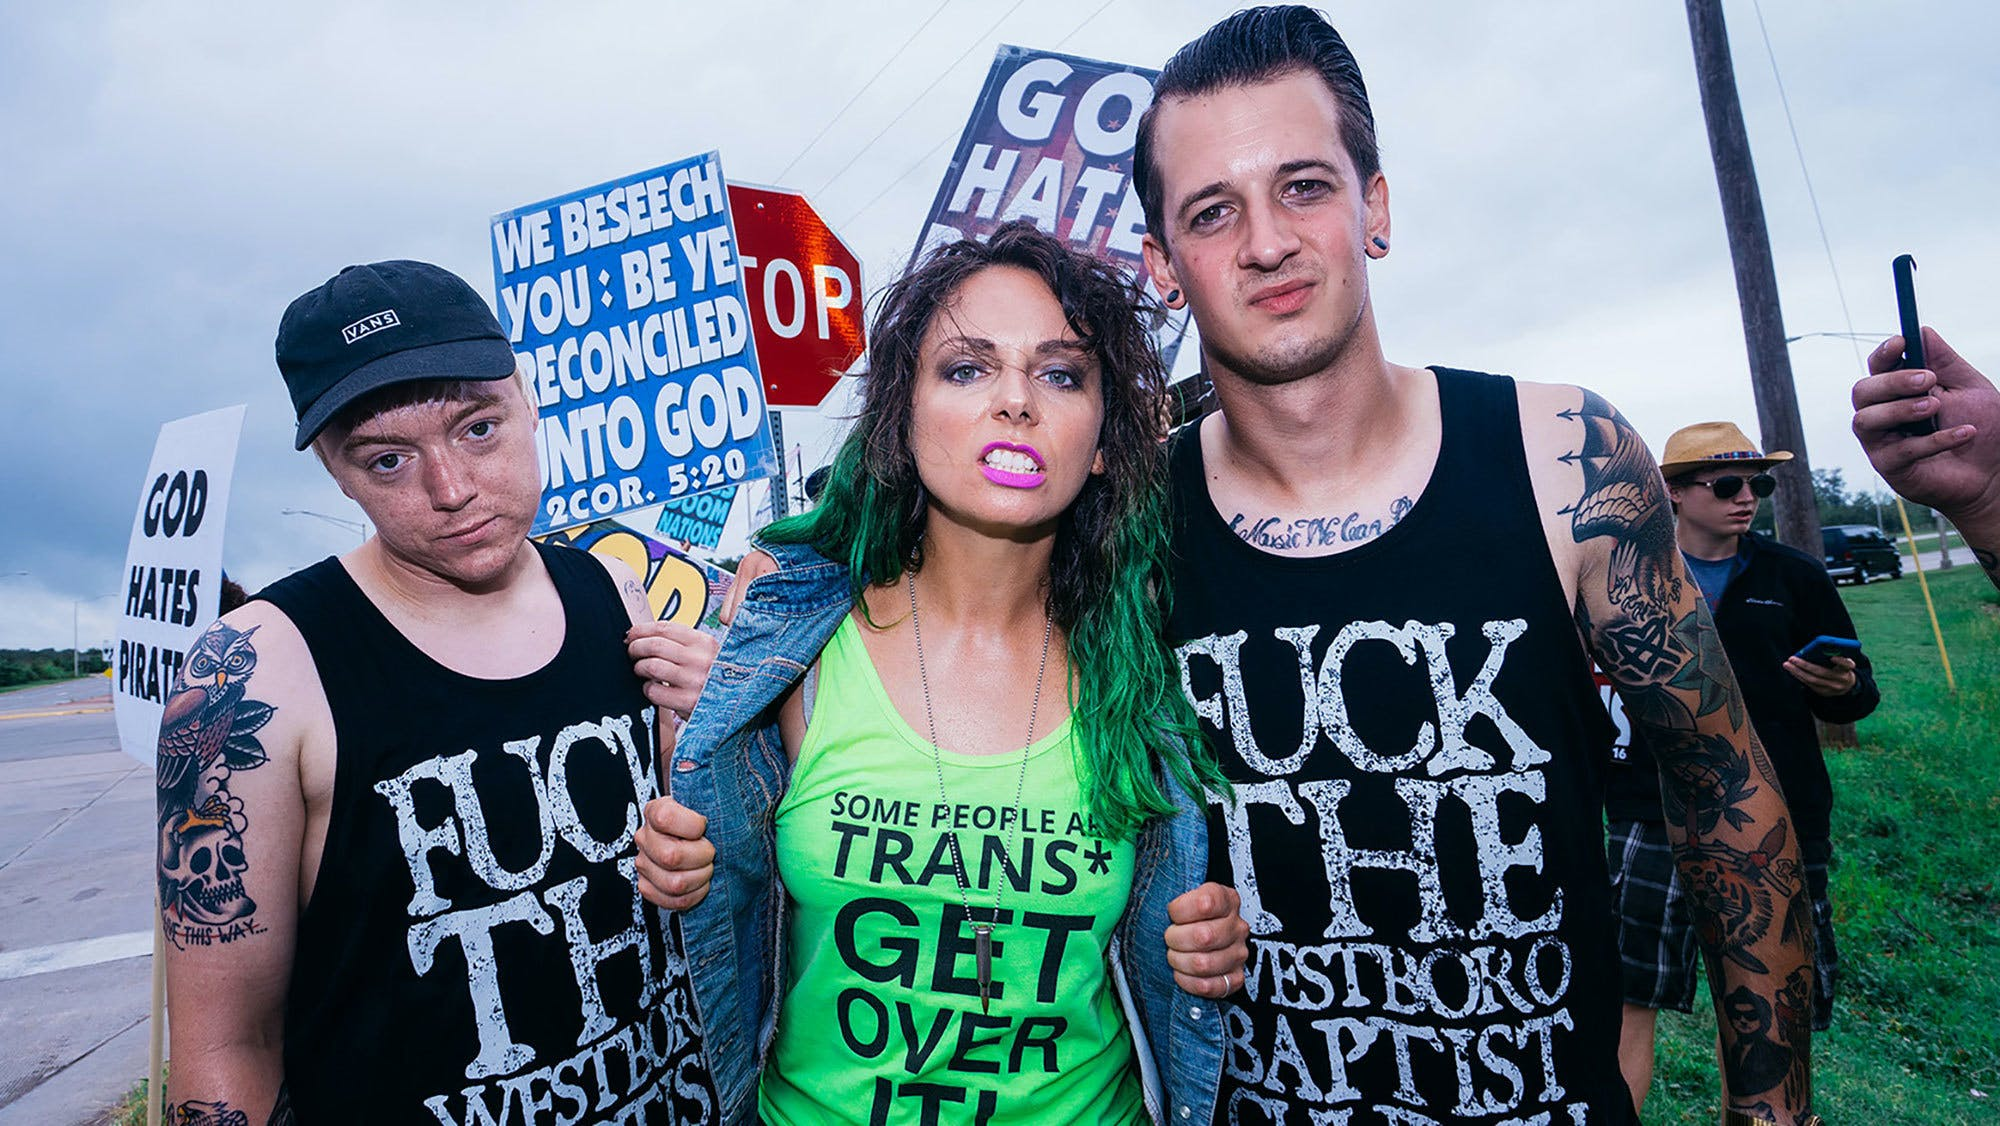 Creeper protesting Westboro Baptist Church